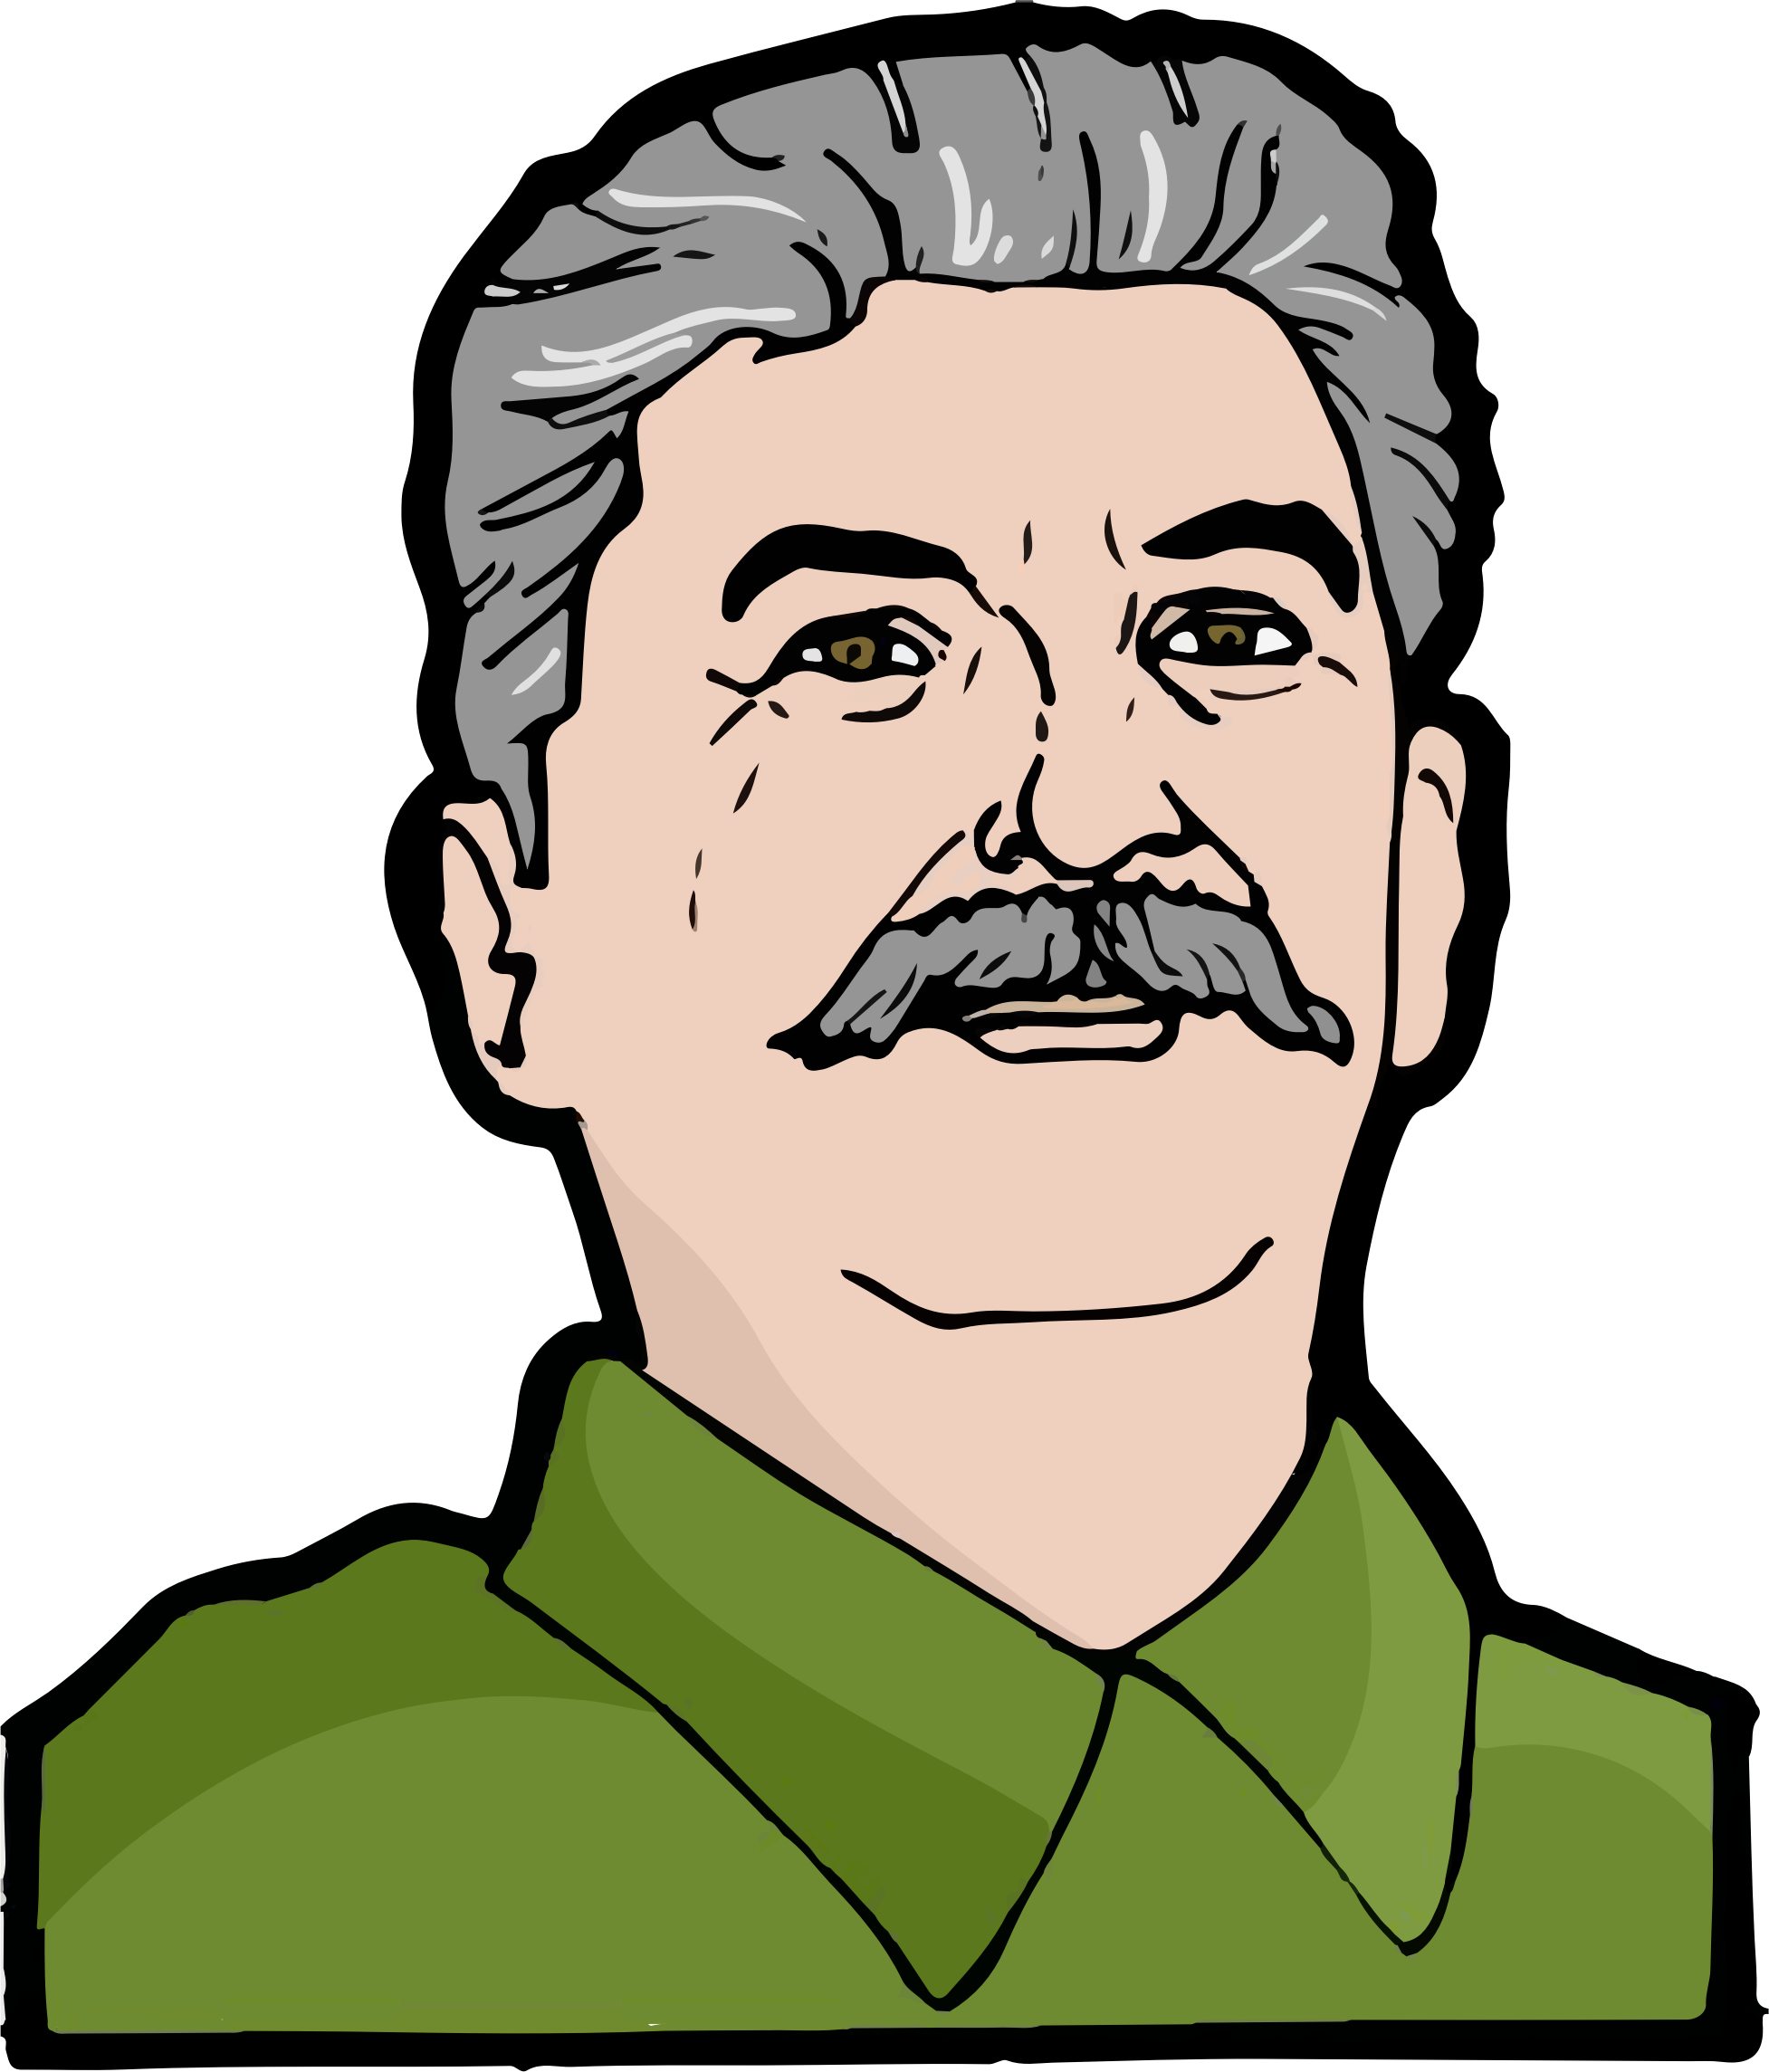 Big Image Joseph Stalin Clipart Png Download Full Size Clipart 1981392 Pinclipart